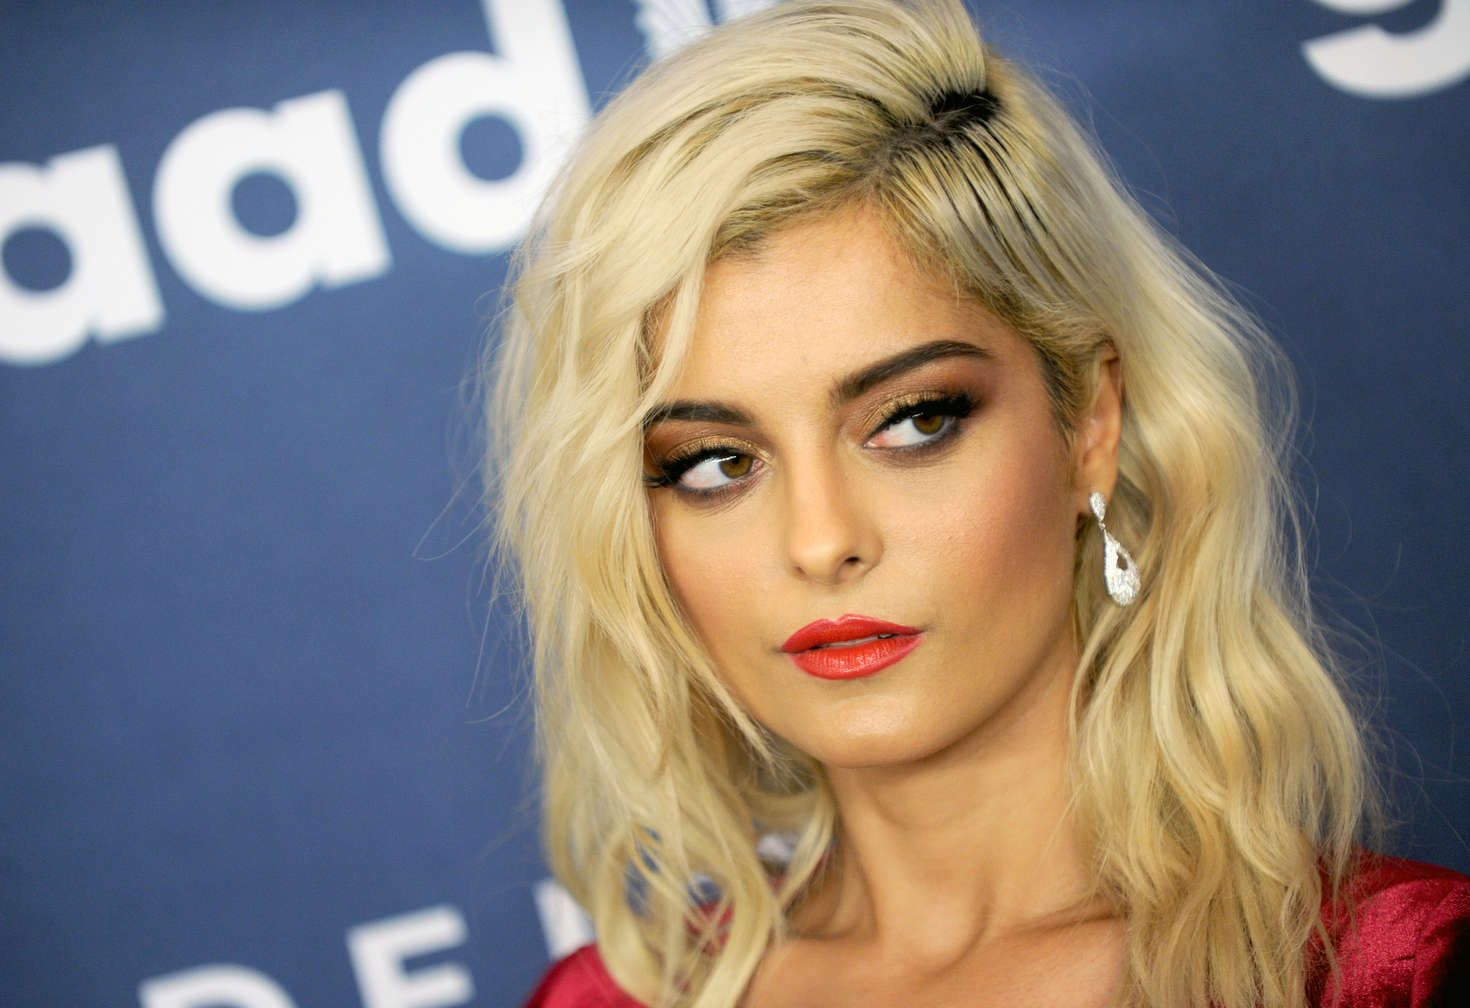 Bebe Rexha Wallpapers Hd Collection For Free Download Ii